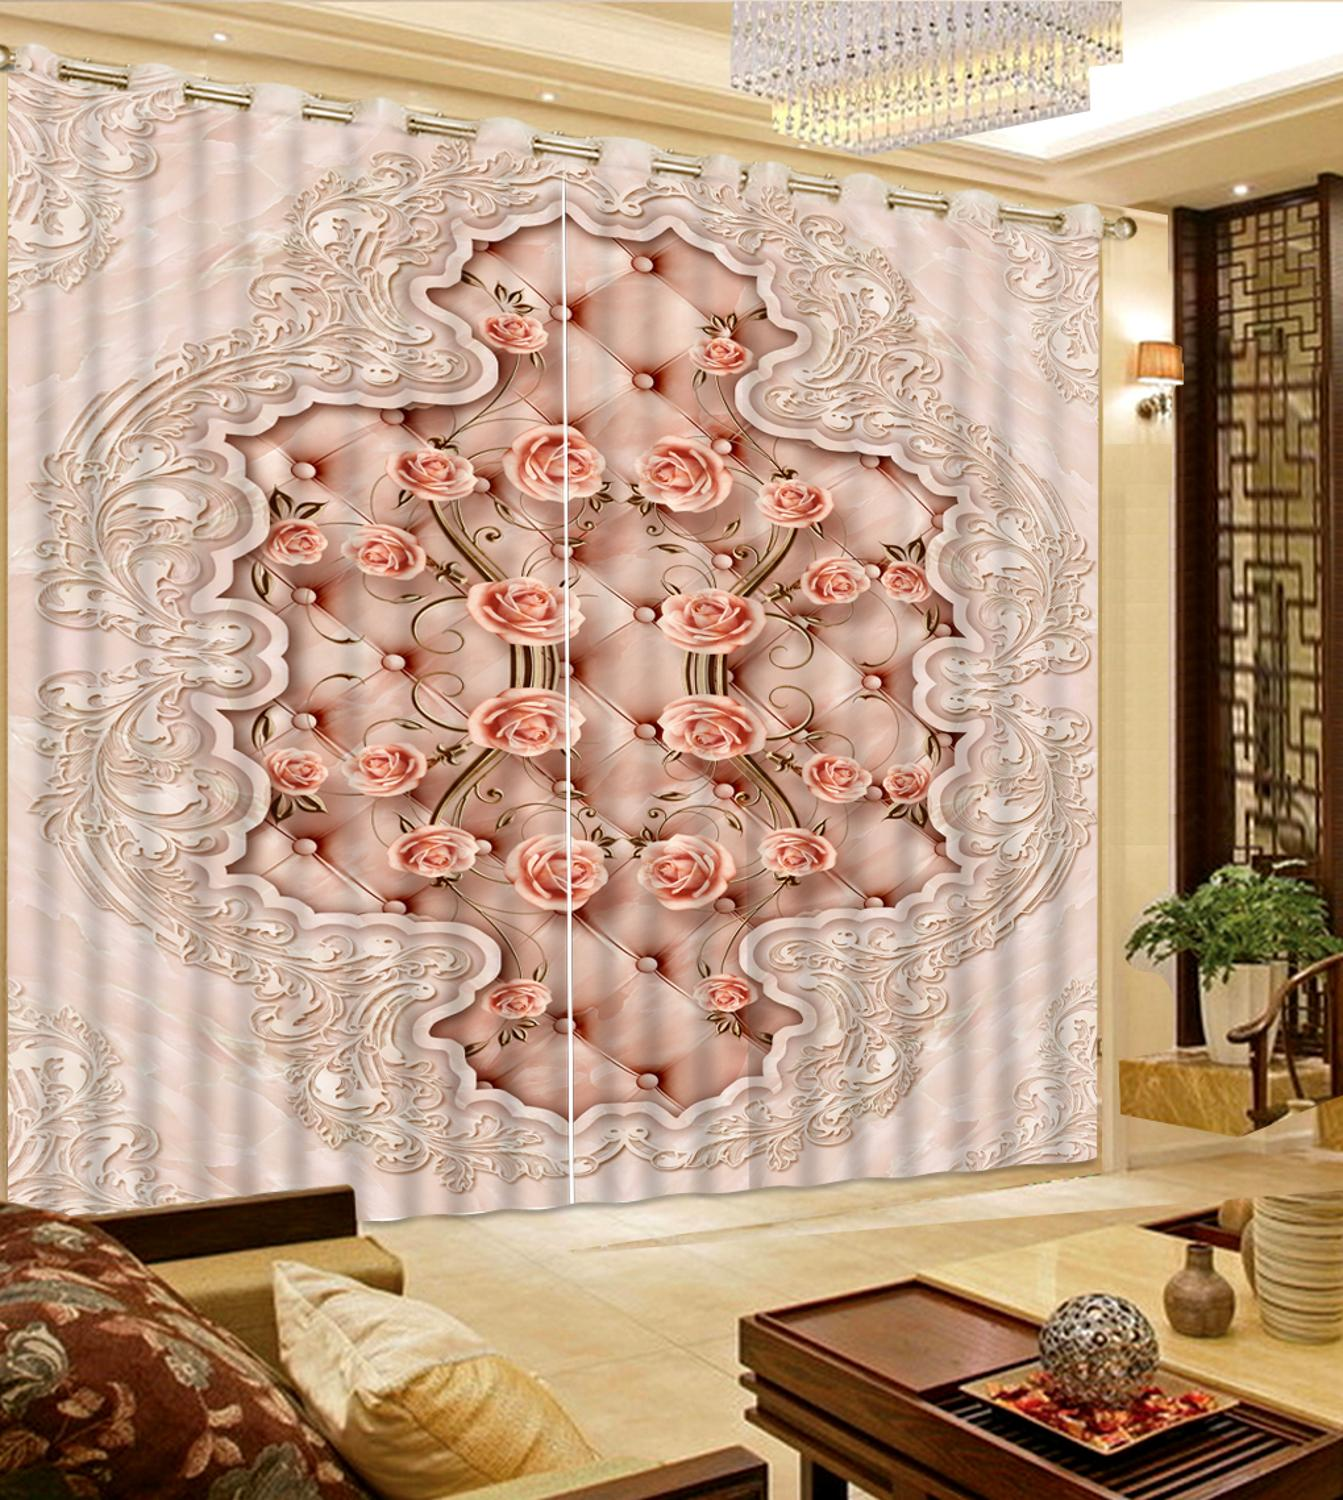 luxury home modern curtains for bedroom living room modern ready made curtainsluxury home modern curtains for bedroom living room modern ready made curtains